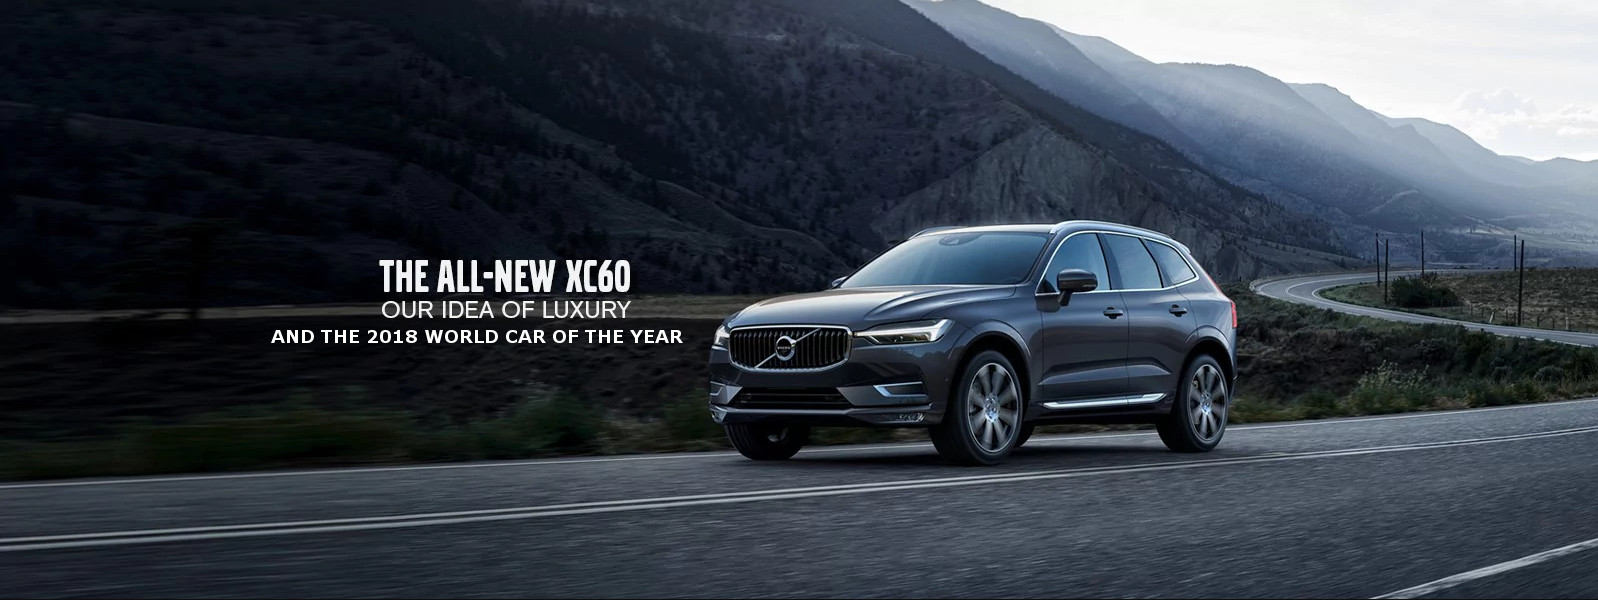 2018 World Car of the Year -- Volvo XC60